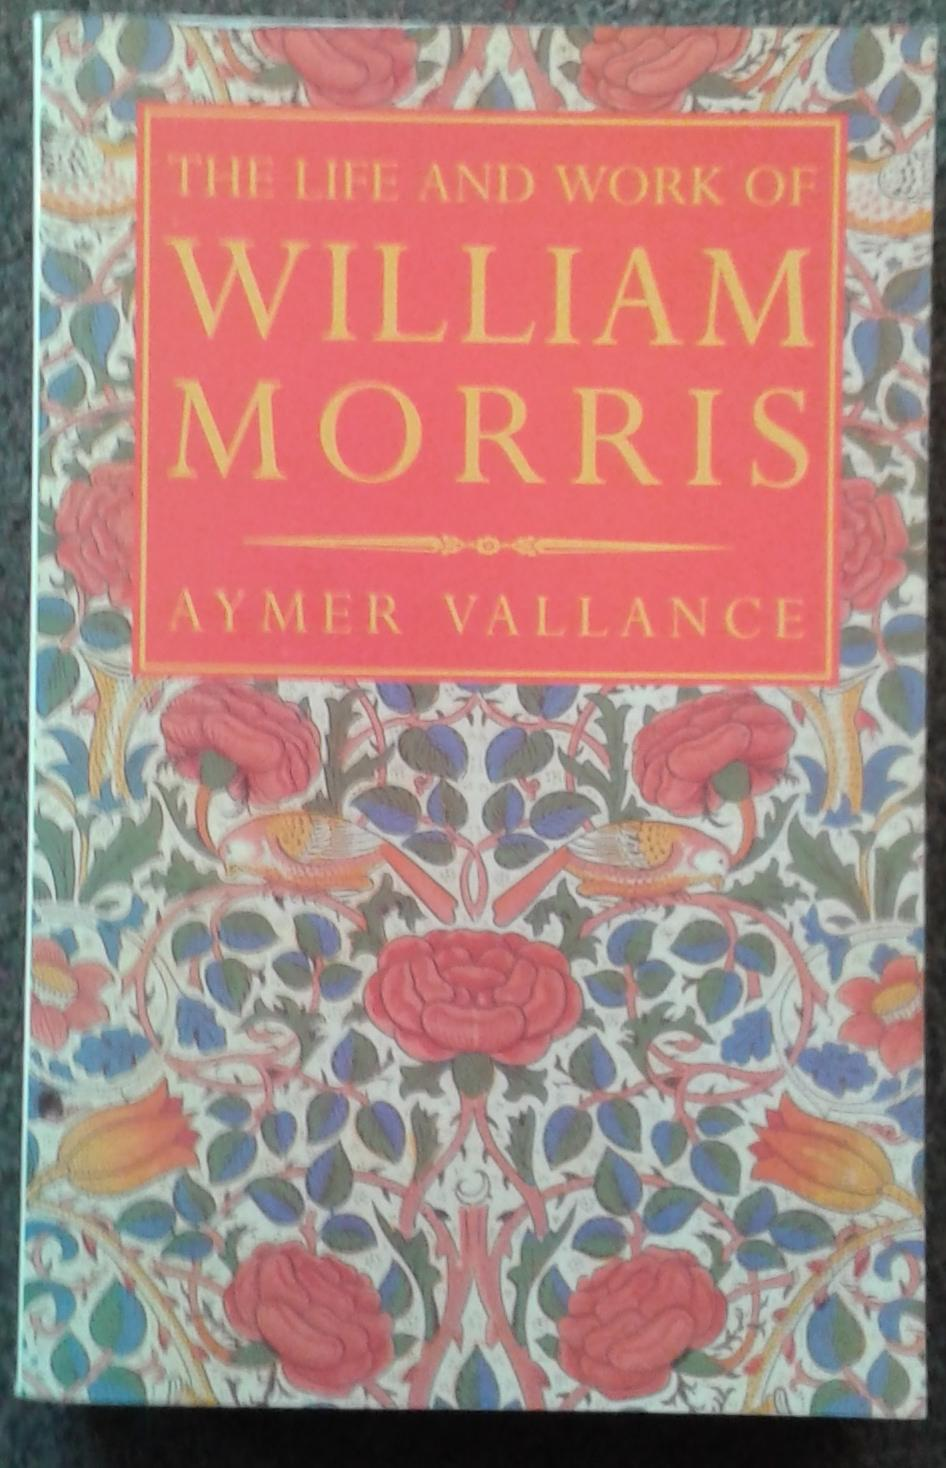 WILLIAM MORRIS HIS ART HIS WRITINGS AND: Aymer Vallance.